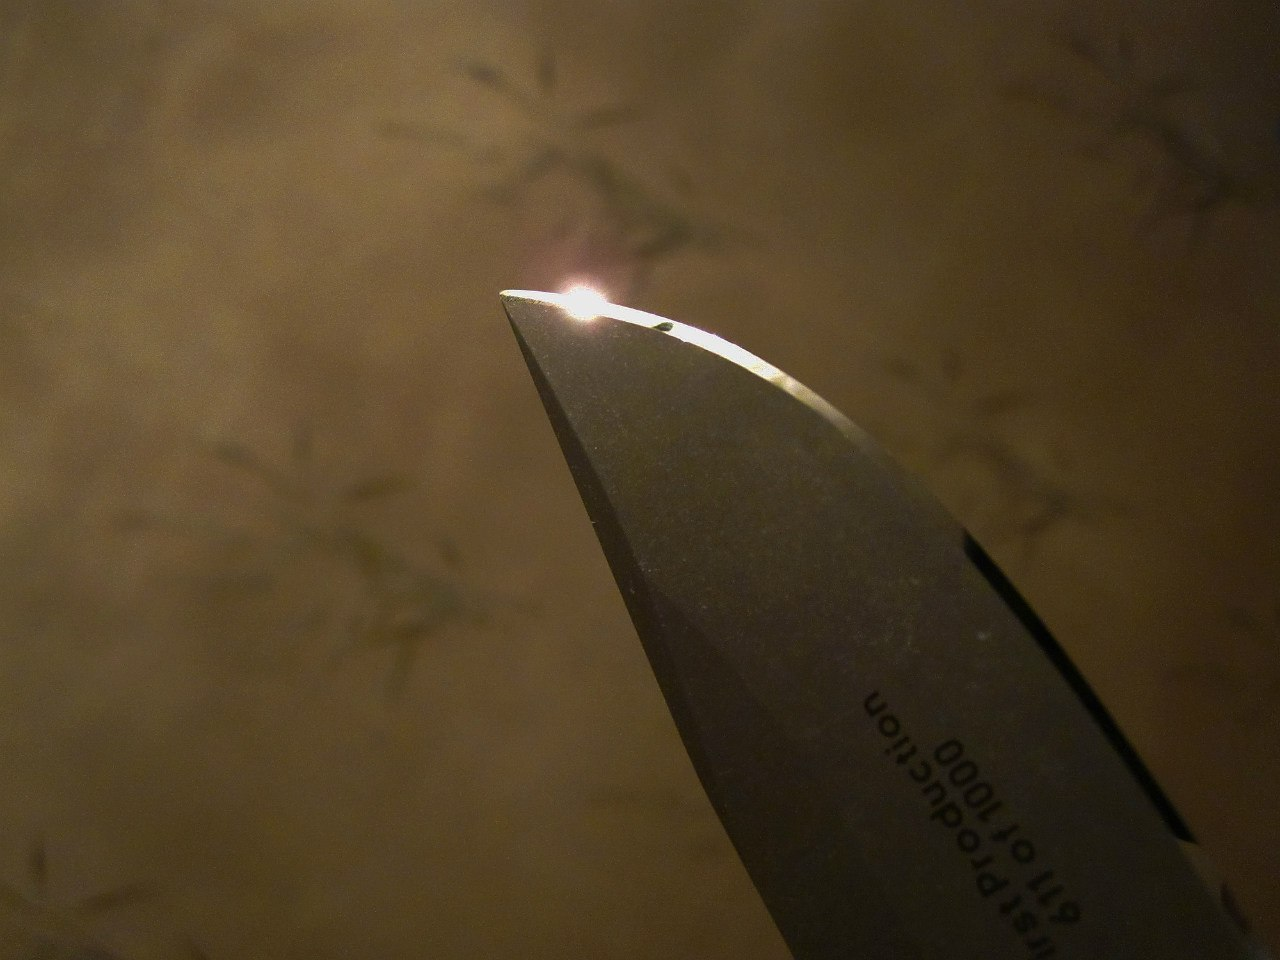 Blade after sharpening by Dmitry «Bariandr» Bass